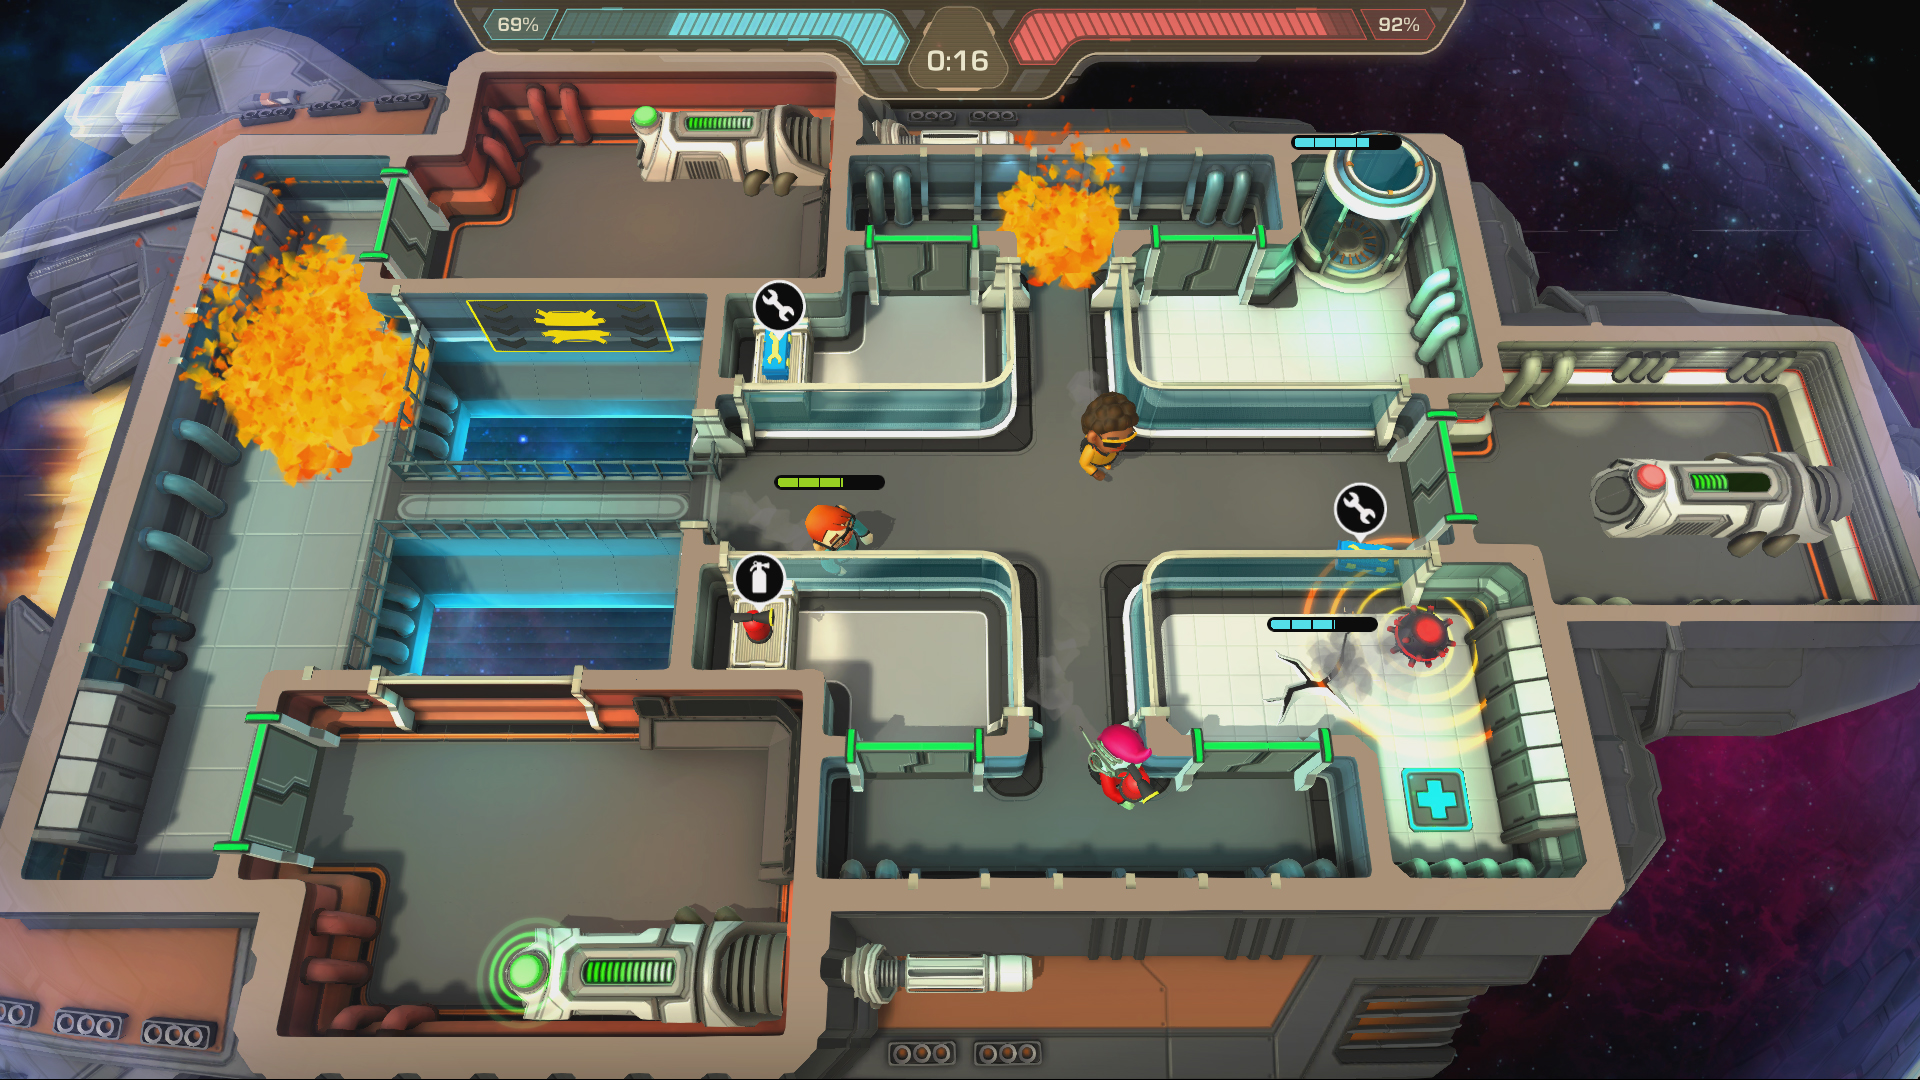 Screenshot of a level in the game, with bombs, cracks and fire